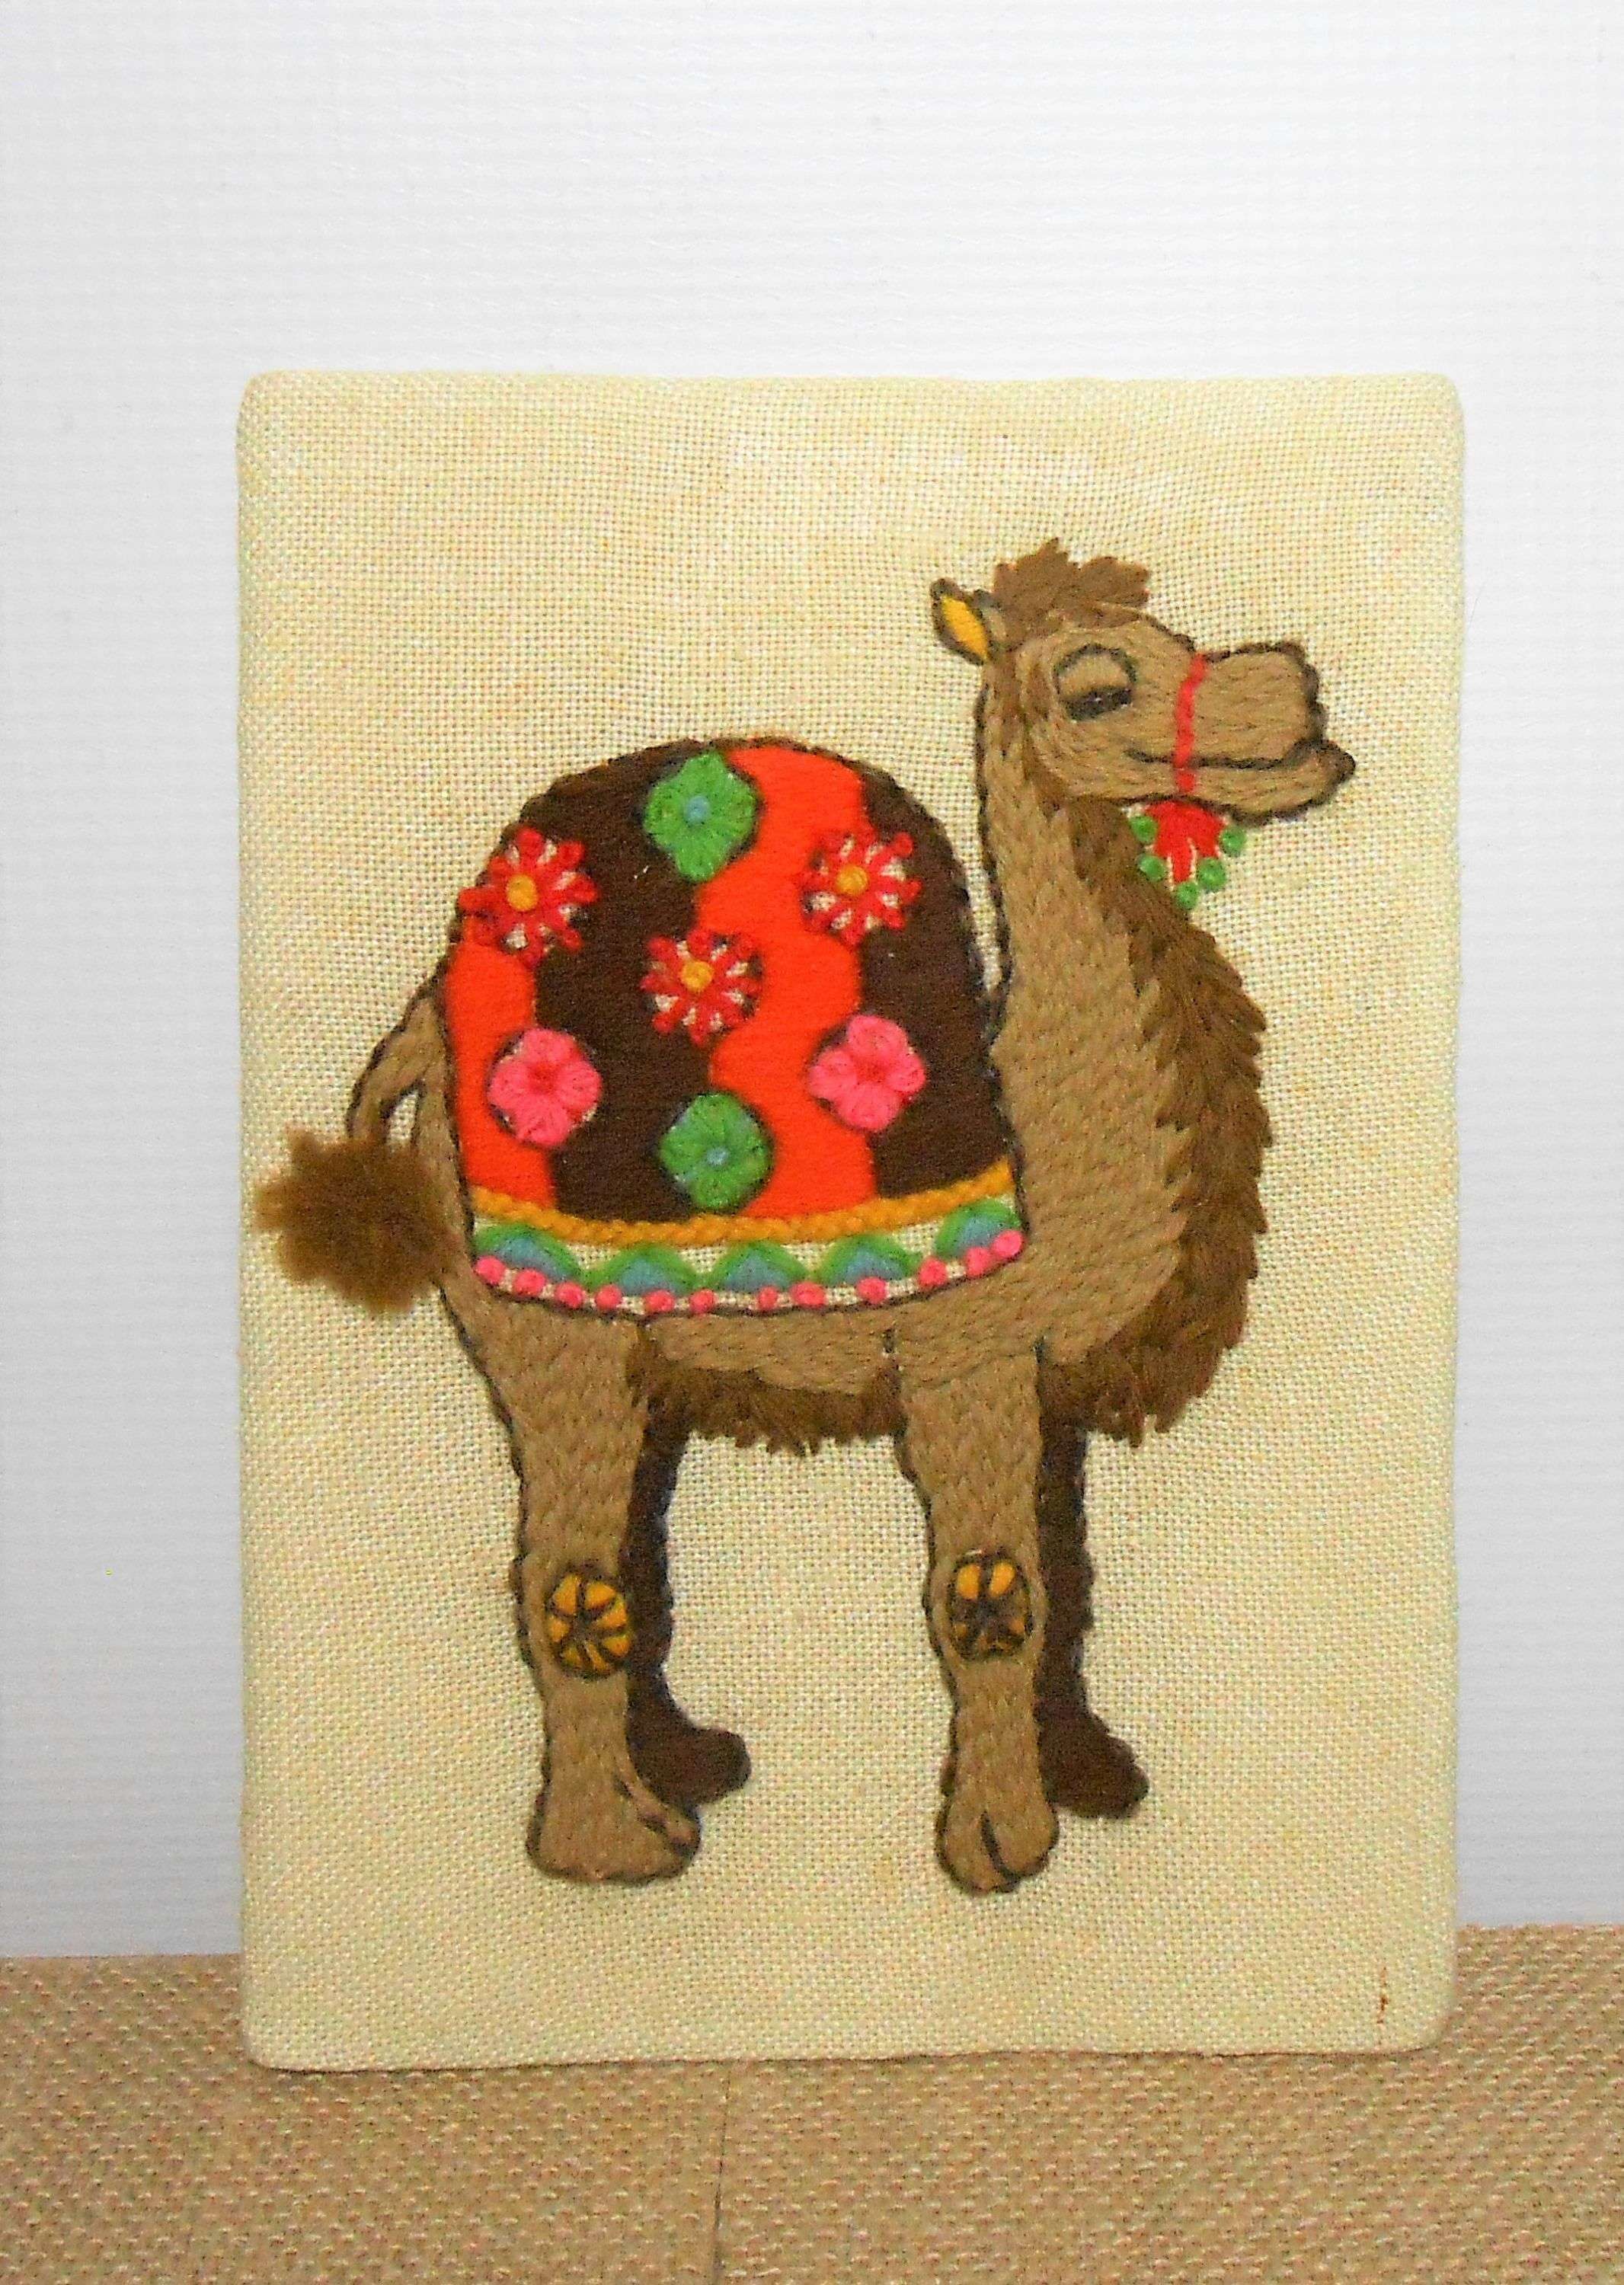 Vintage Wall Hanging, Camel, Embroidered, Cross Stitch, Zoo Decor ...